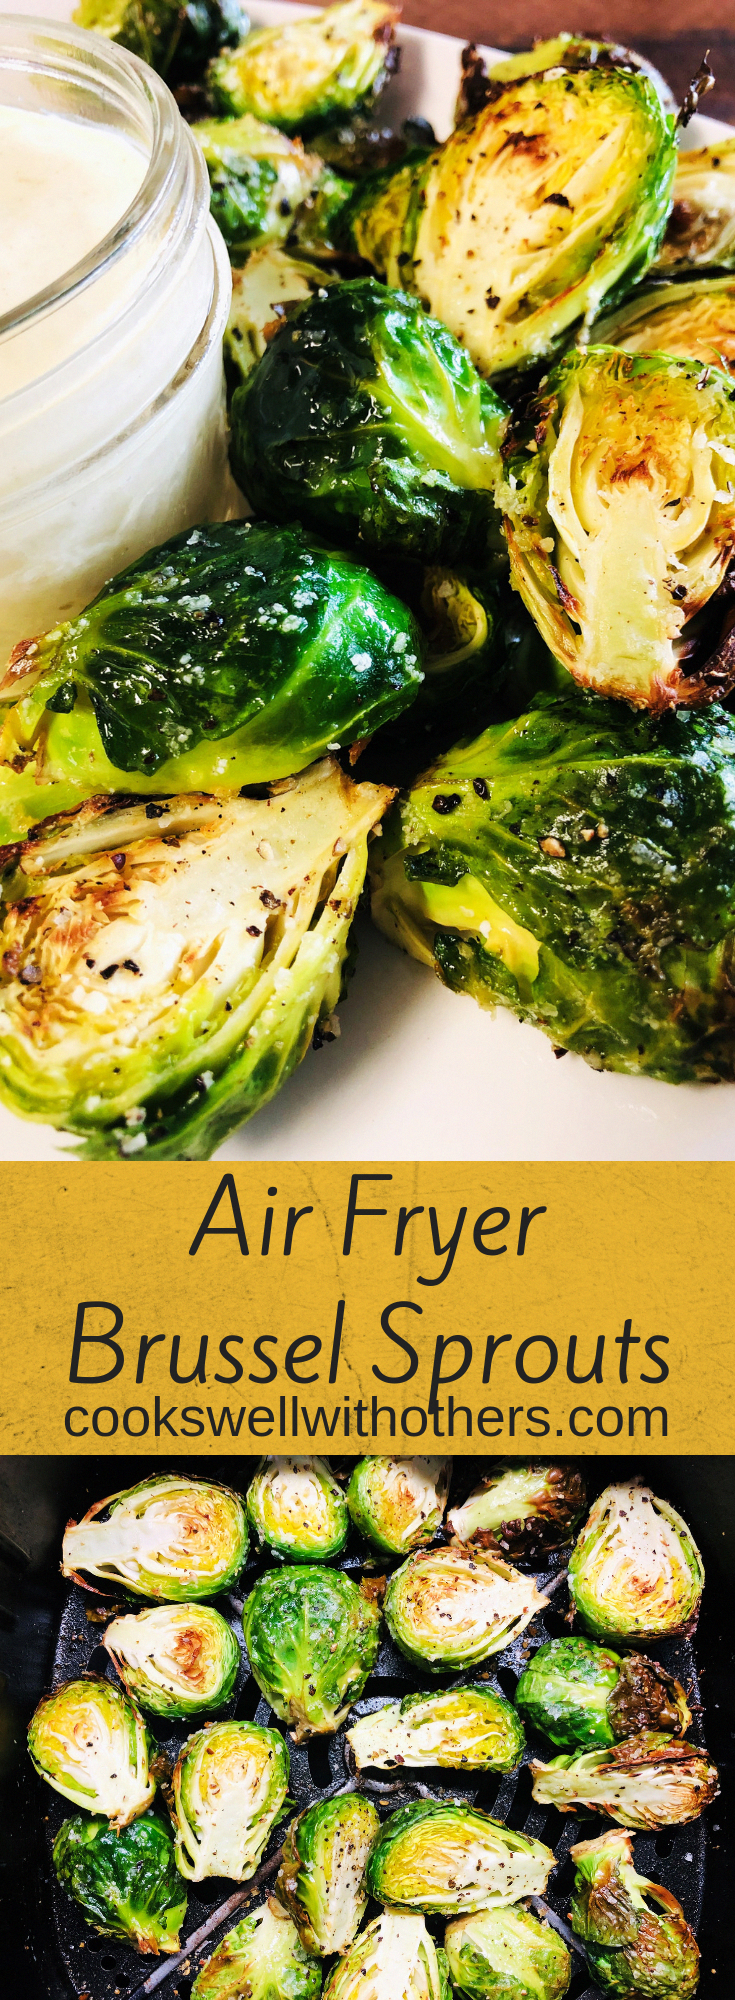 Air Fryer Brussel Sprouts Recipe Food Recipes Air